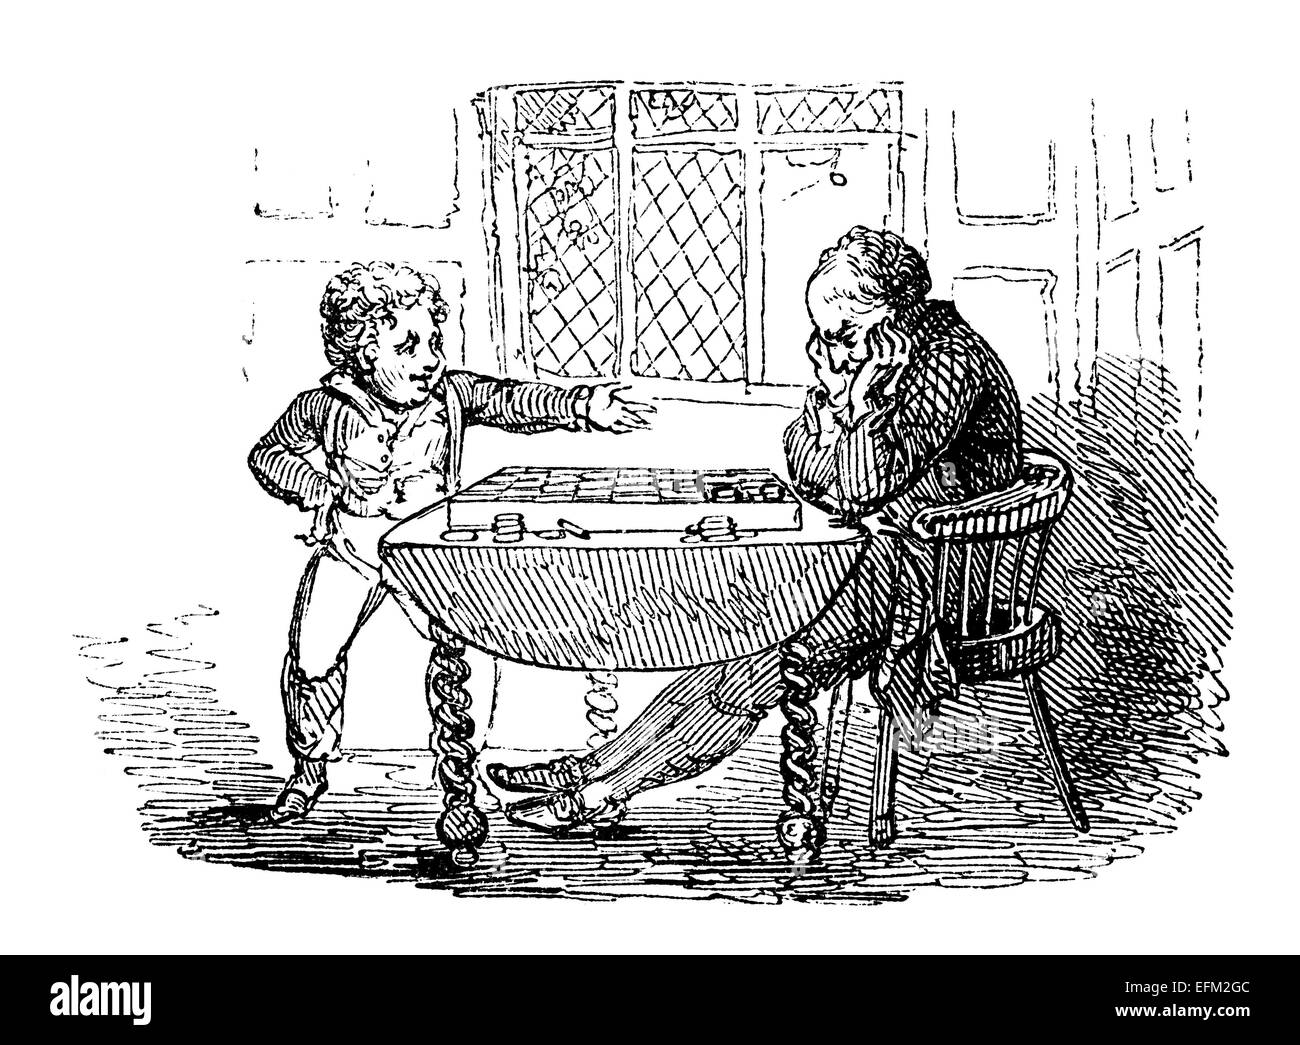 19th century engraving of a man and boy playing a game of draughts - Stock Image